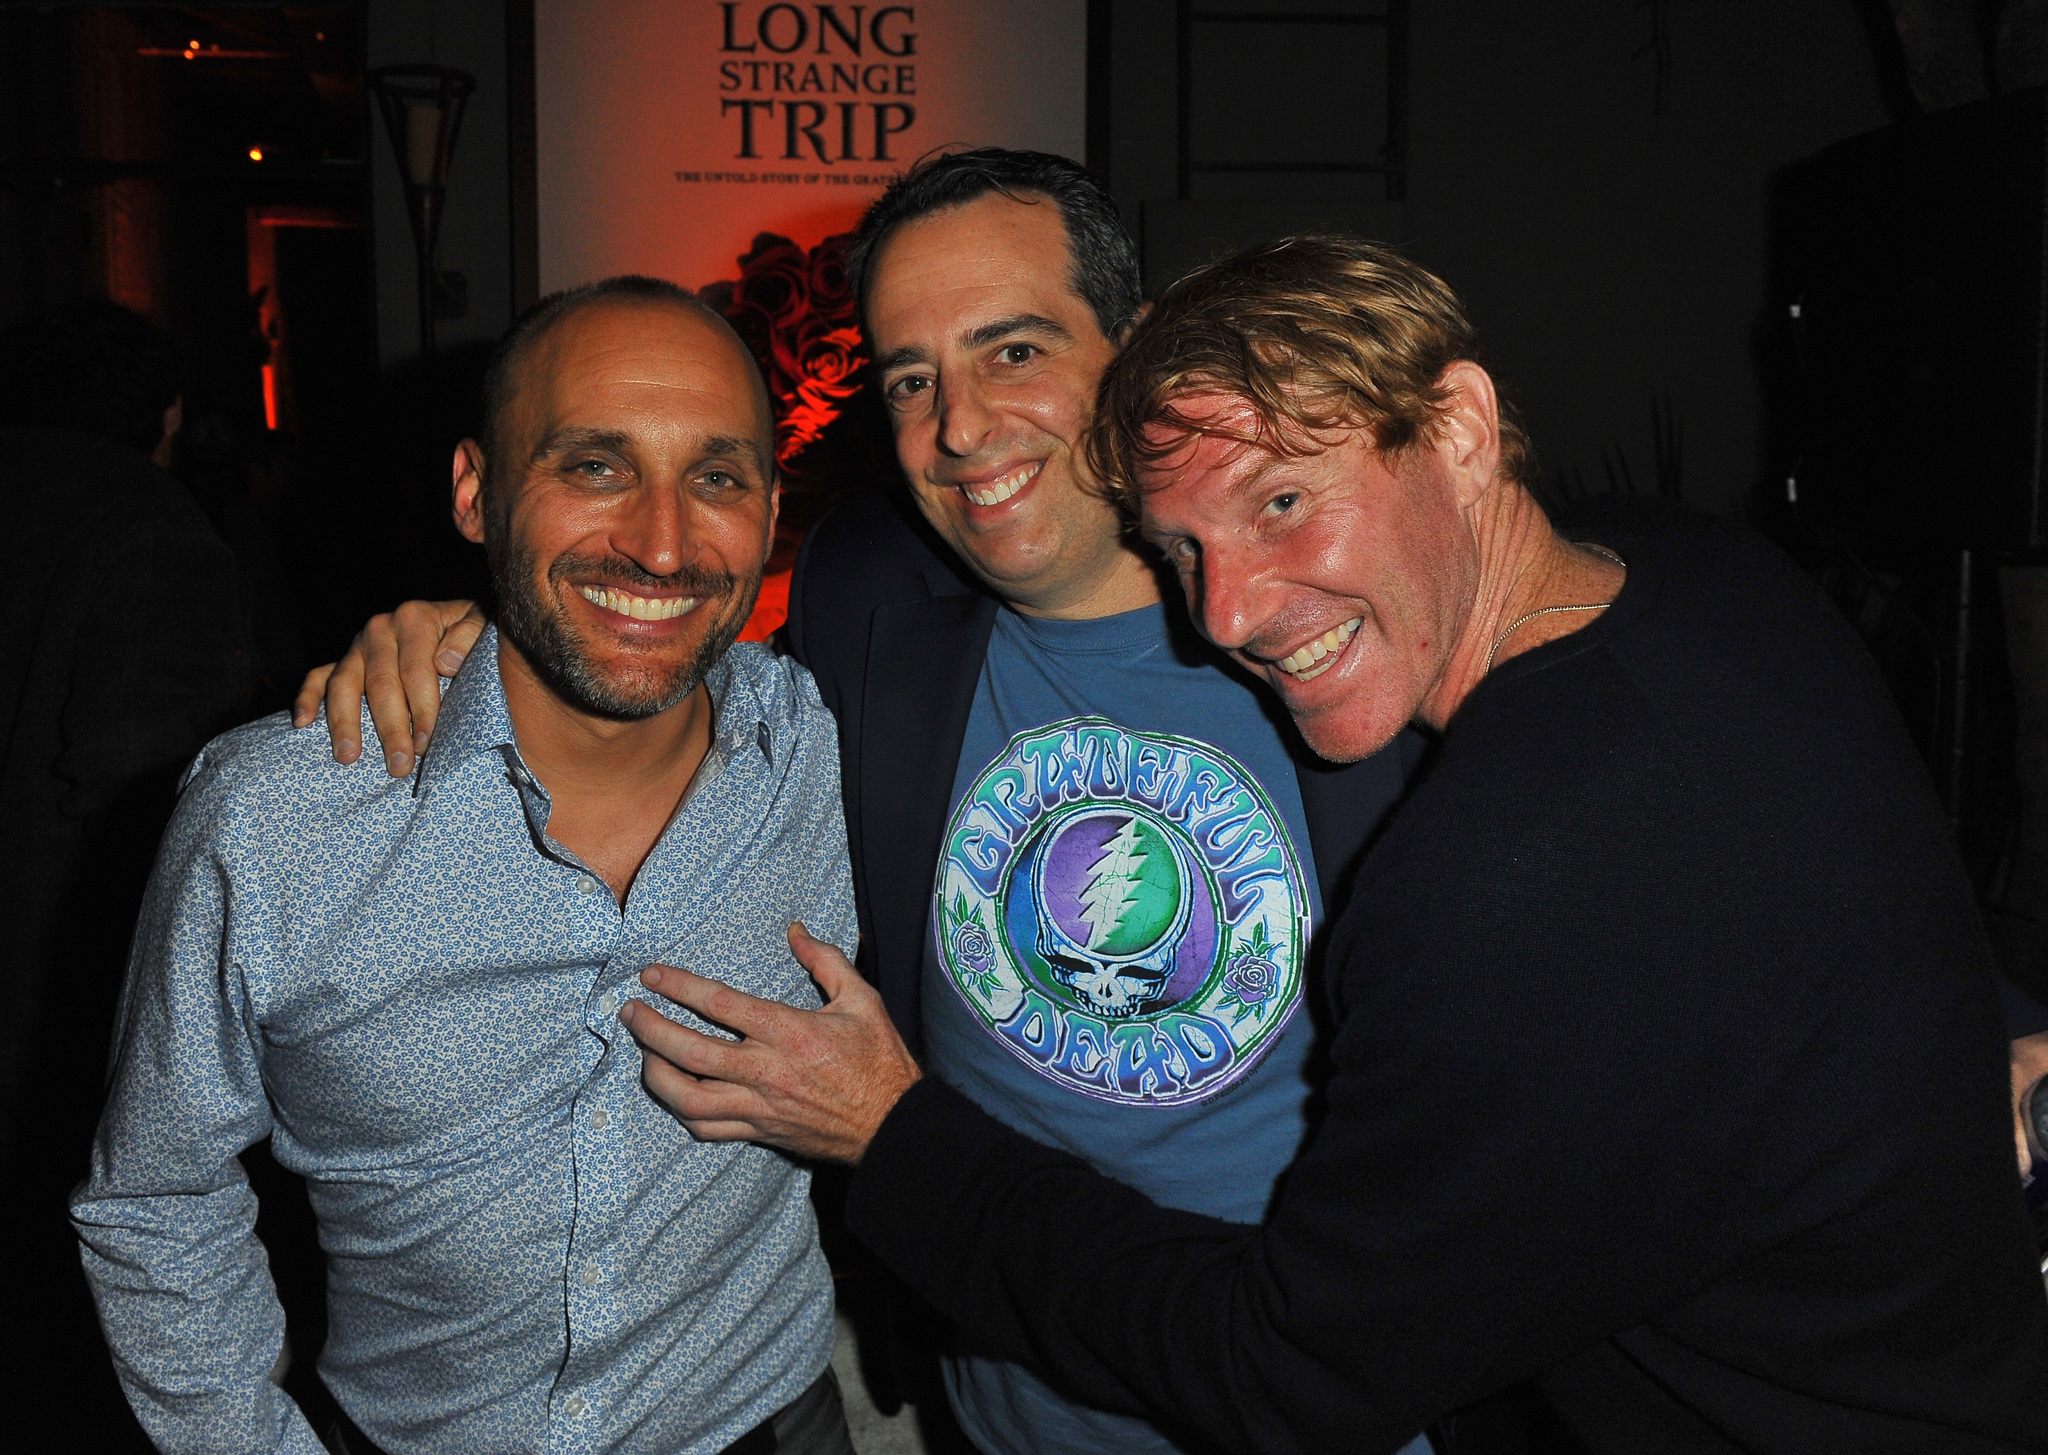 Amir Bar-Lev, Eric Eisner, and Andy Heller at an event for Long Strange Trip (2017)